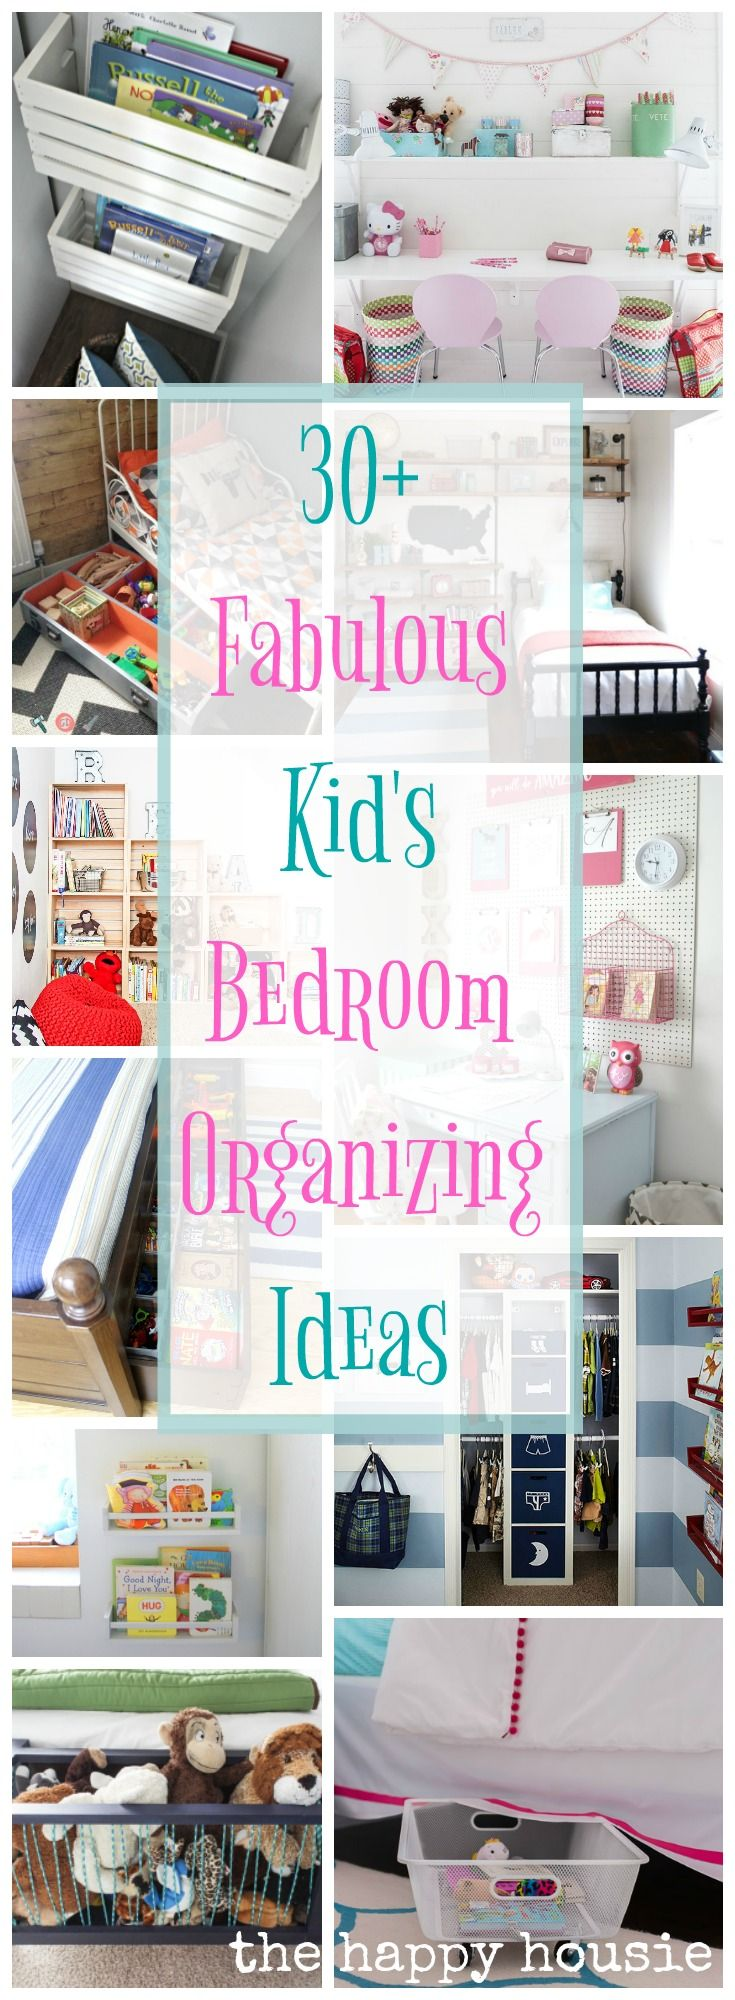 Fantastic Ideas for Organizing Kidu0027s Bedrooms 298